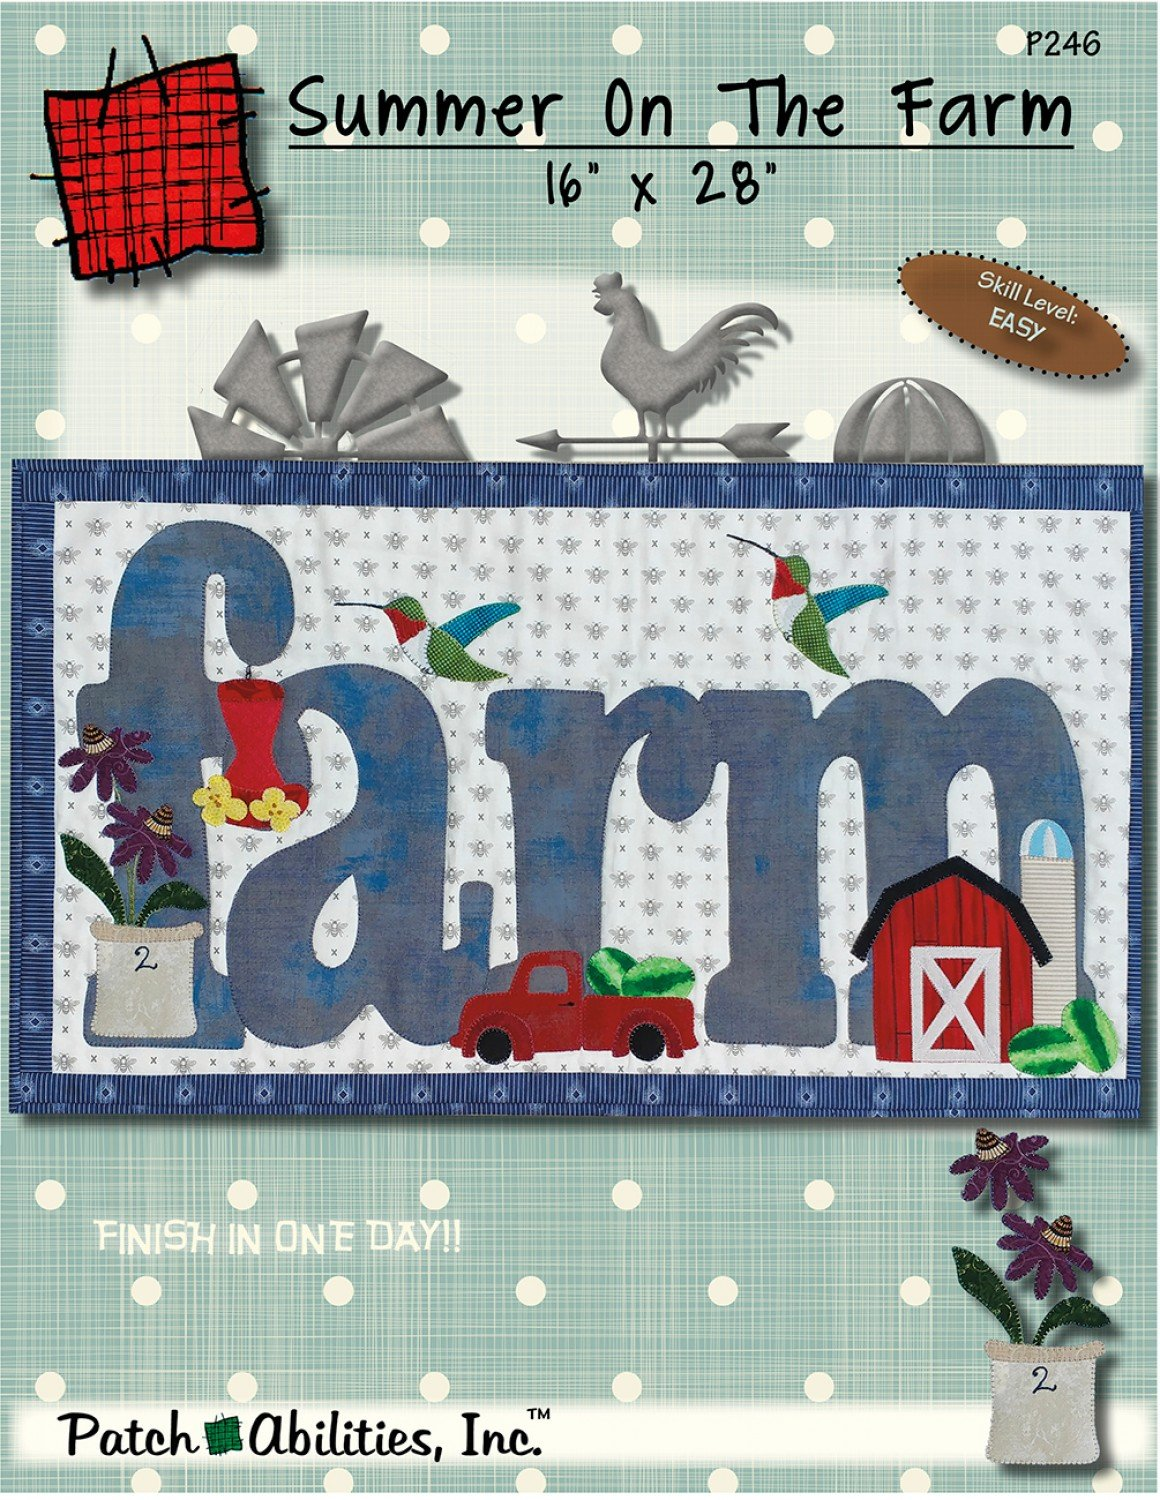 Patchabilities Summer on the Farm Kit